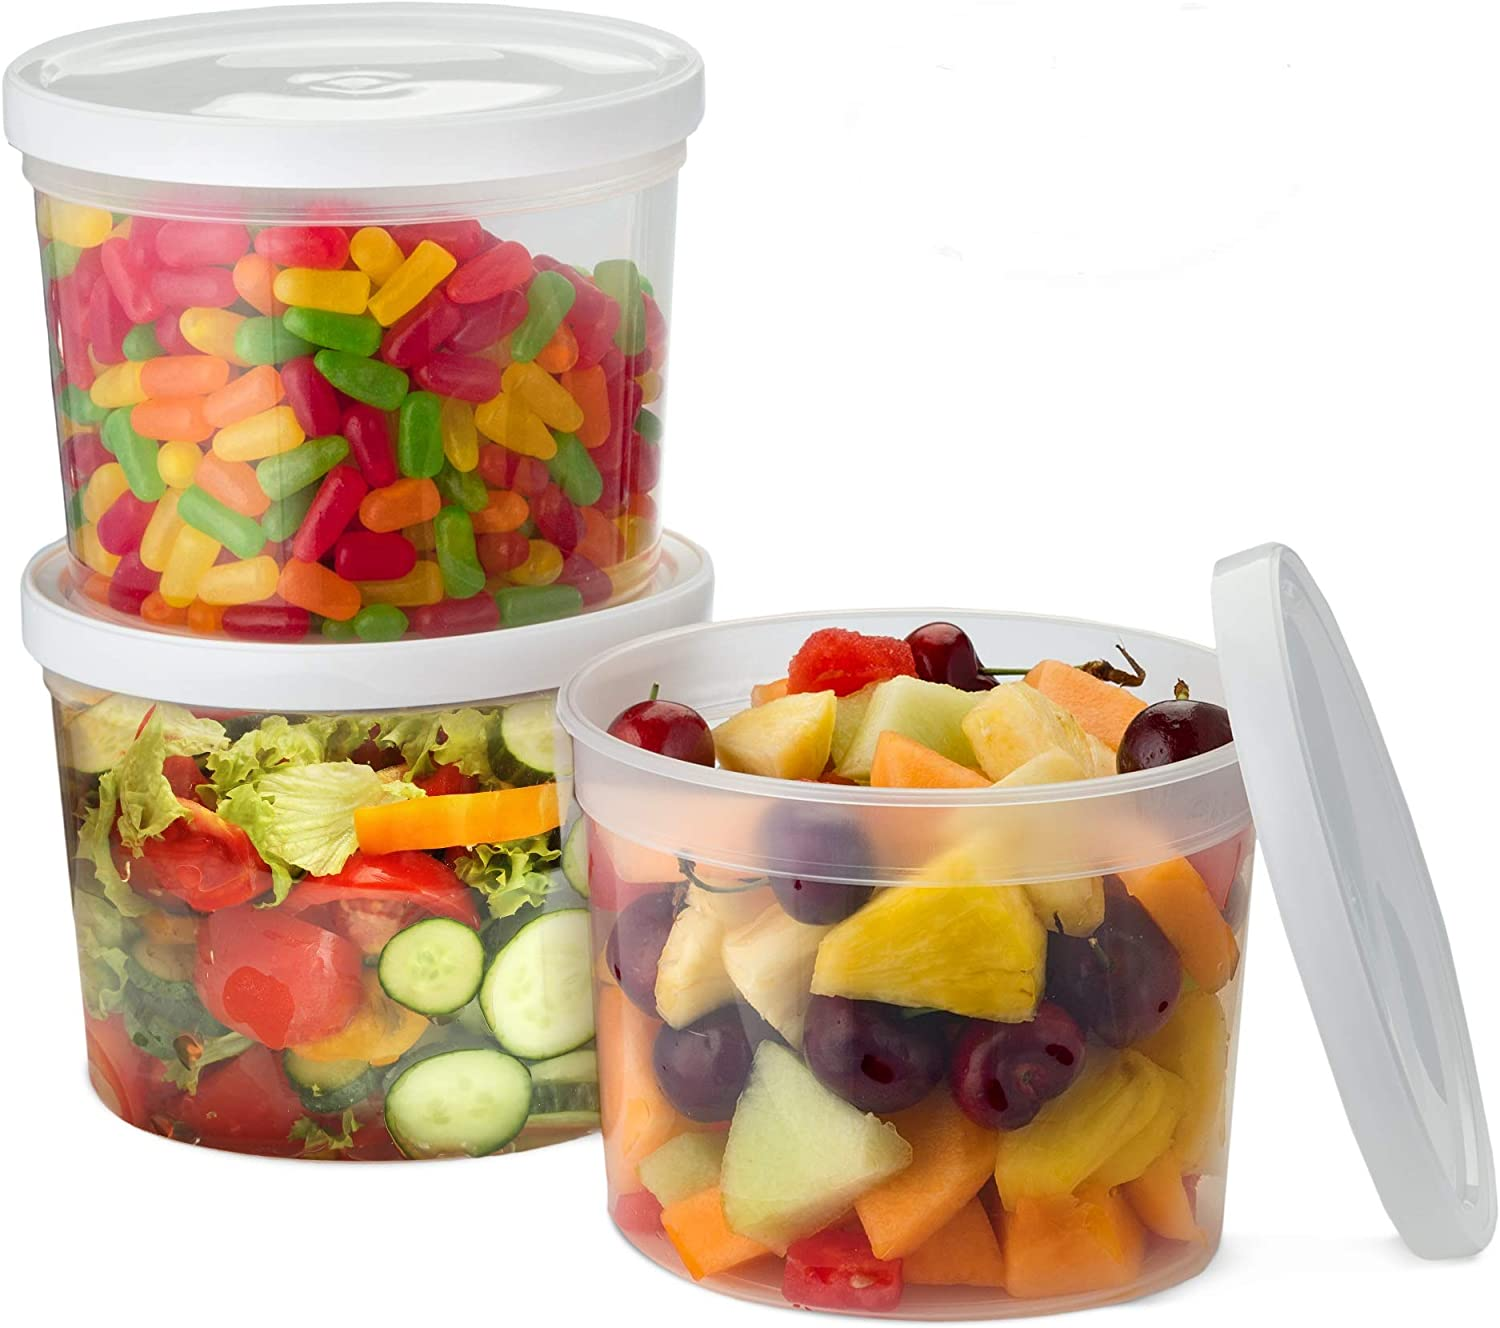 Propack [24 Count 50 Oz Combo] Round Clear Food Storage Deli Container with White Lids, Perfect for Meal Prep Soup, Ice Cream, Freezer, Dishwasher and Microwave Safe